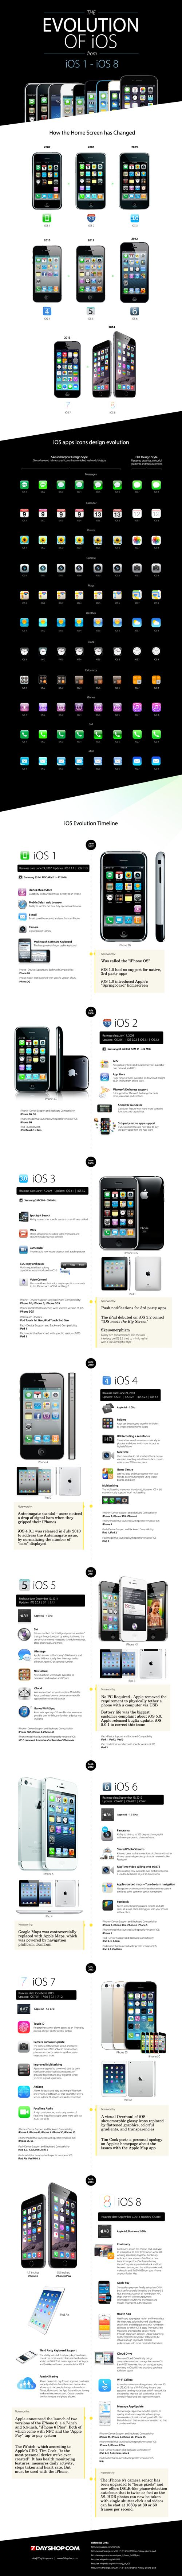 The Evolution of iOS - http://www.coolinfoimages.com/infographics/the-evolution-of-ios/